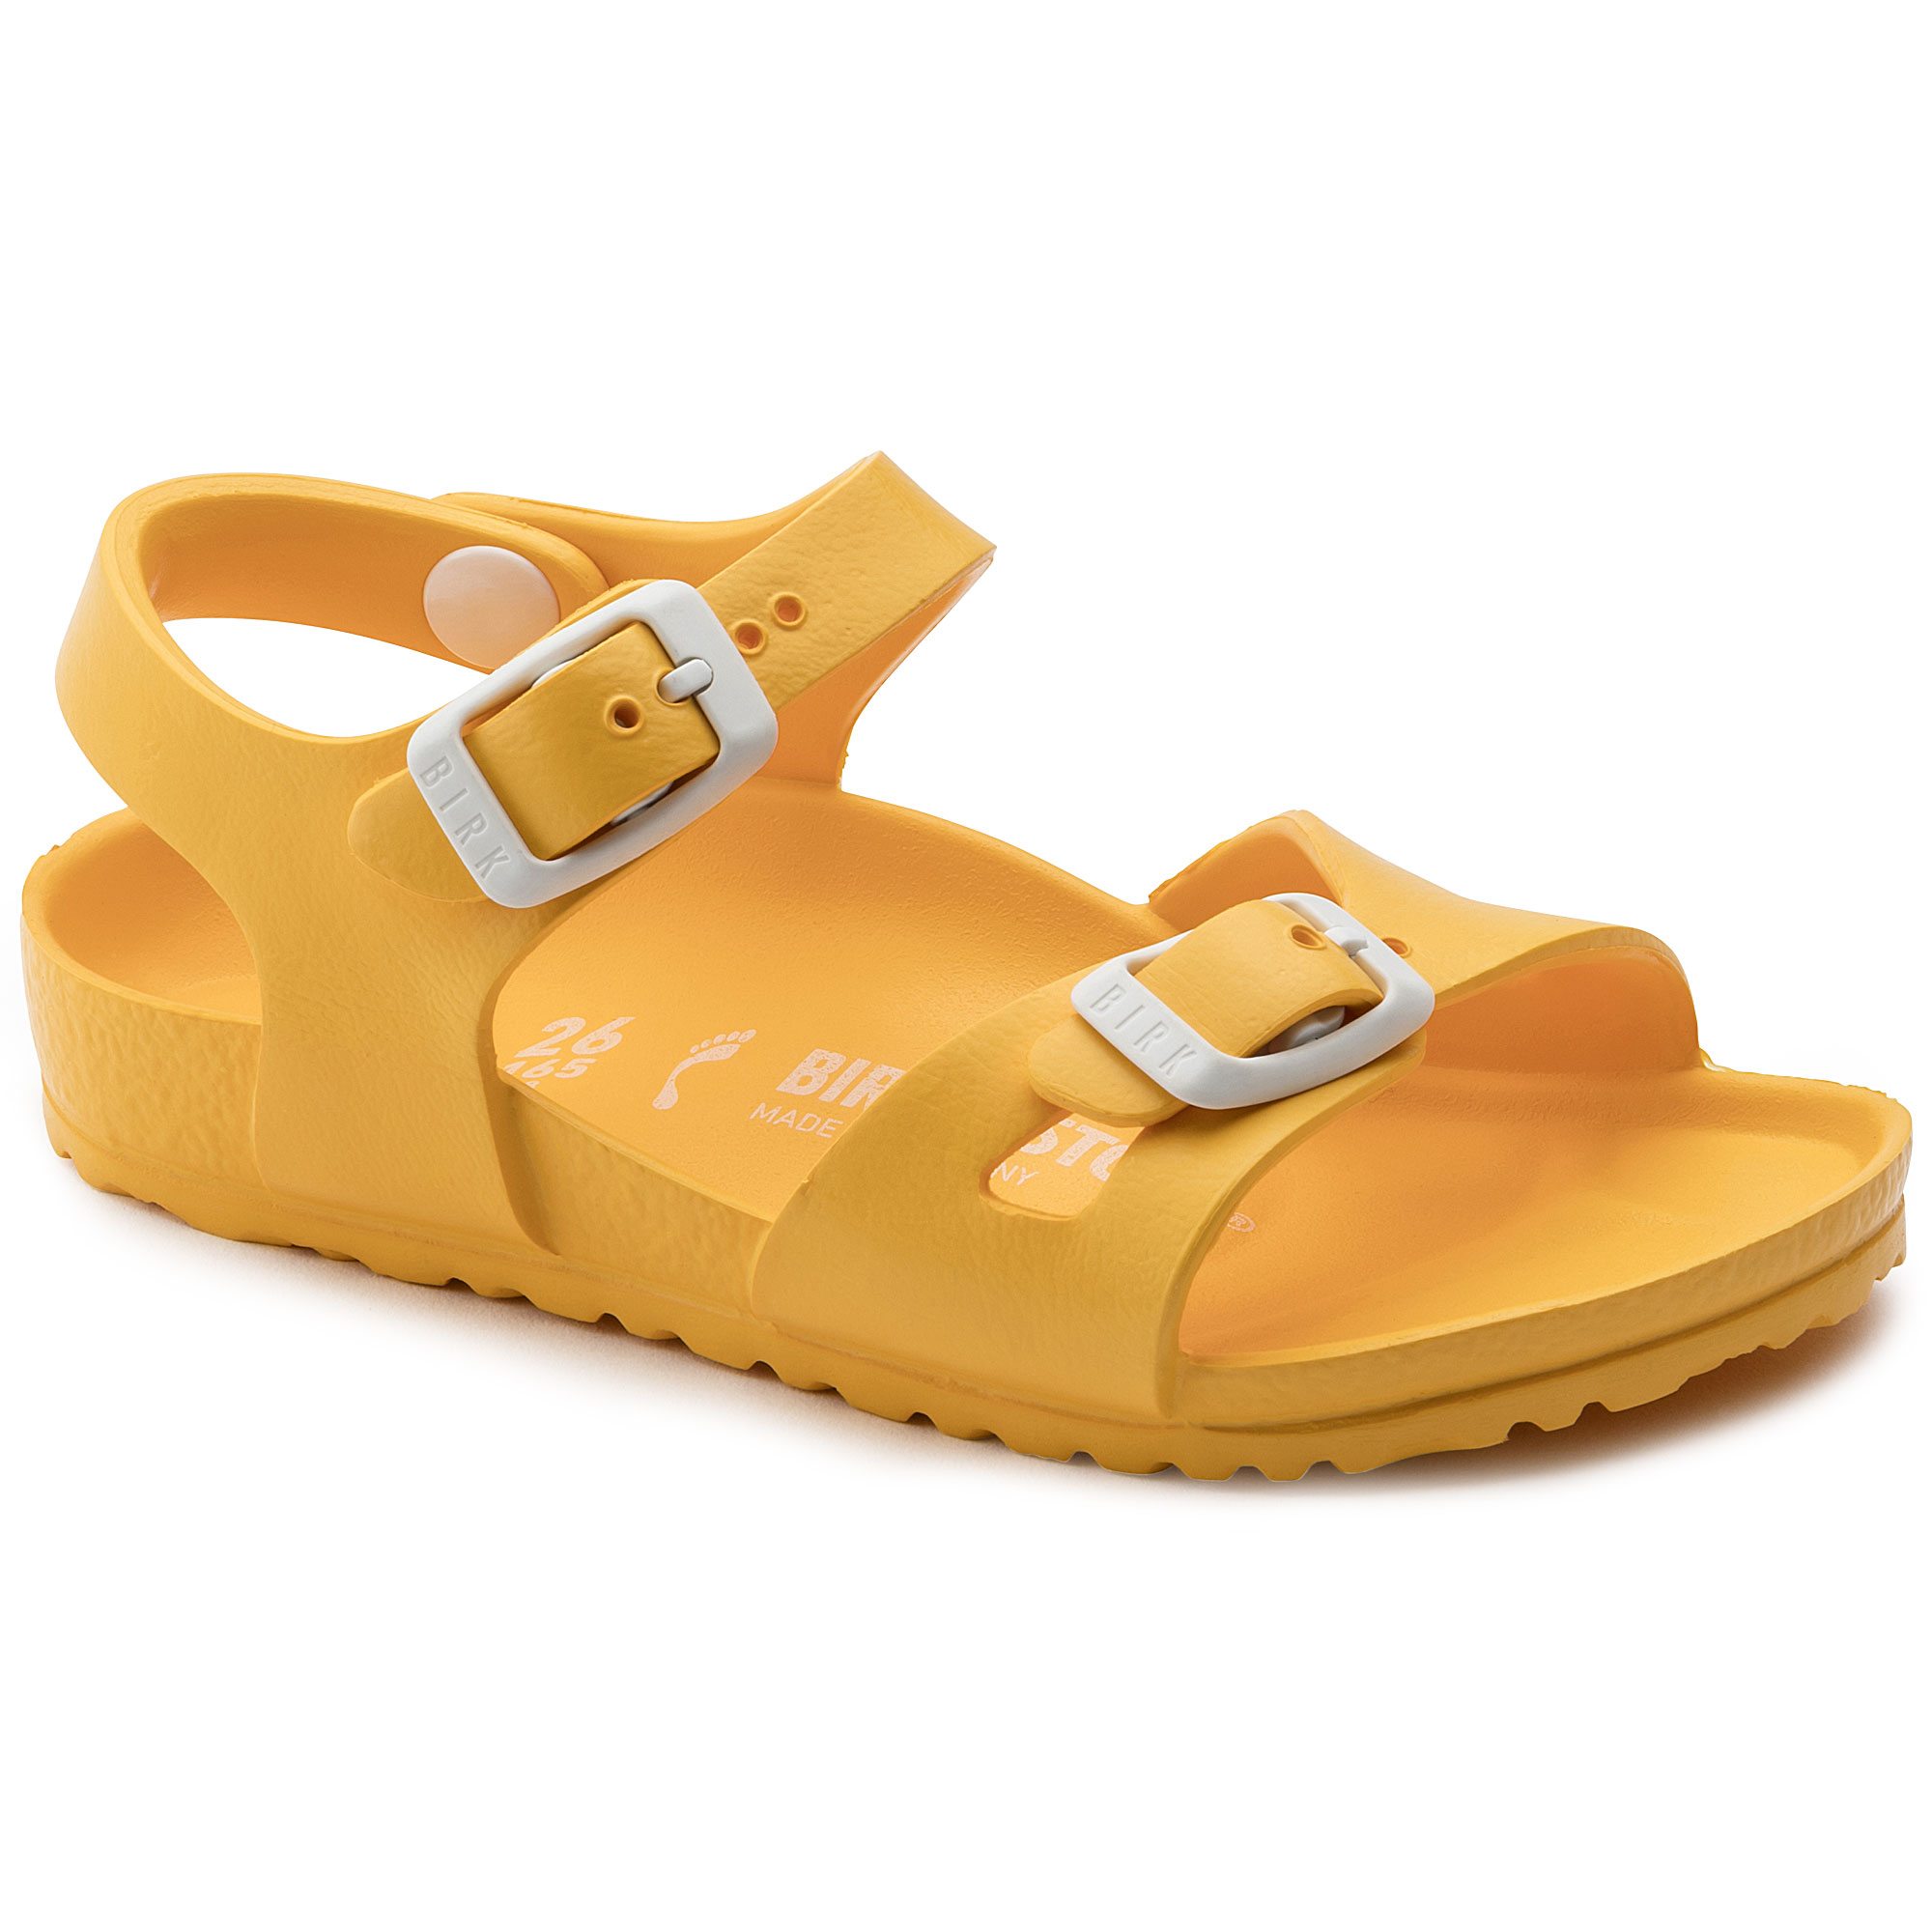 Kids Houseshoes | shop online at BIRKENSTOCK